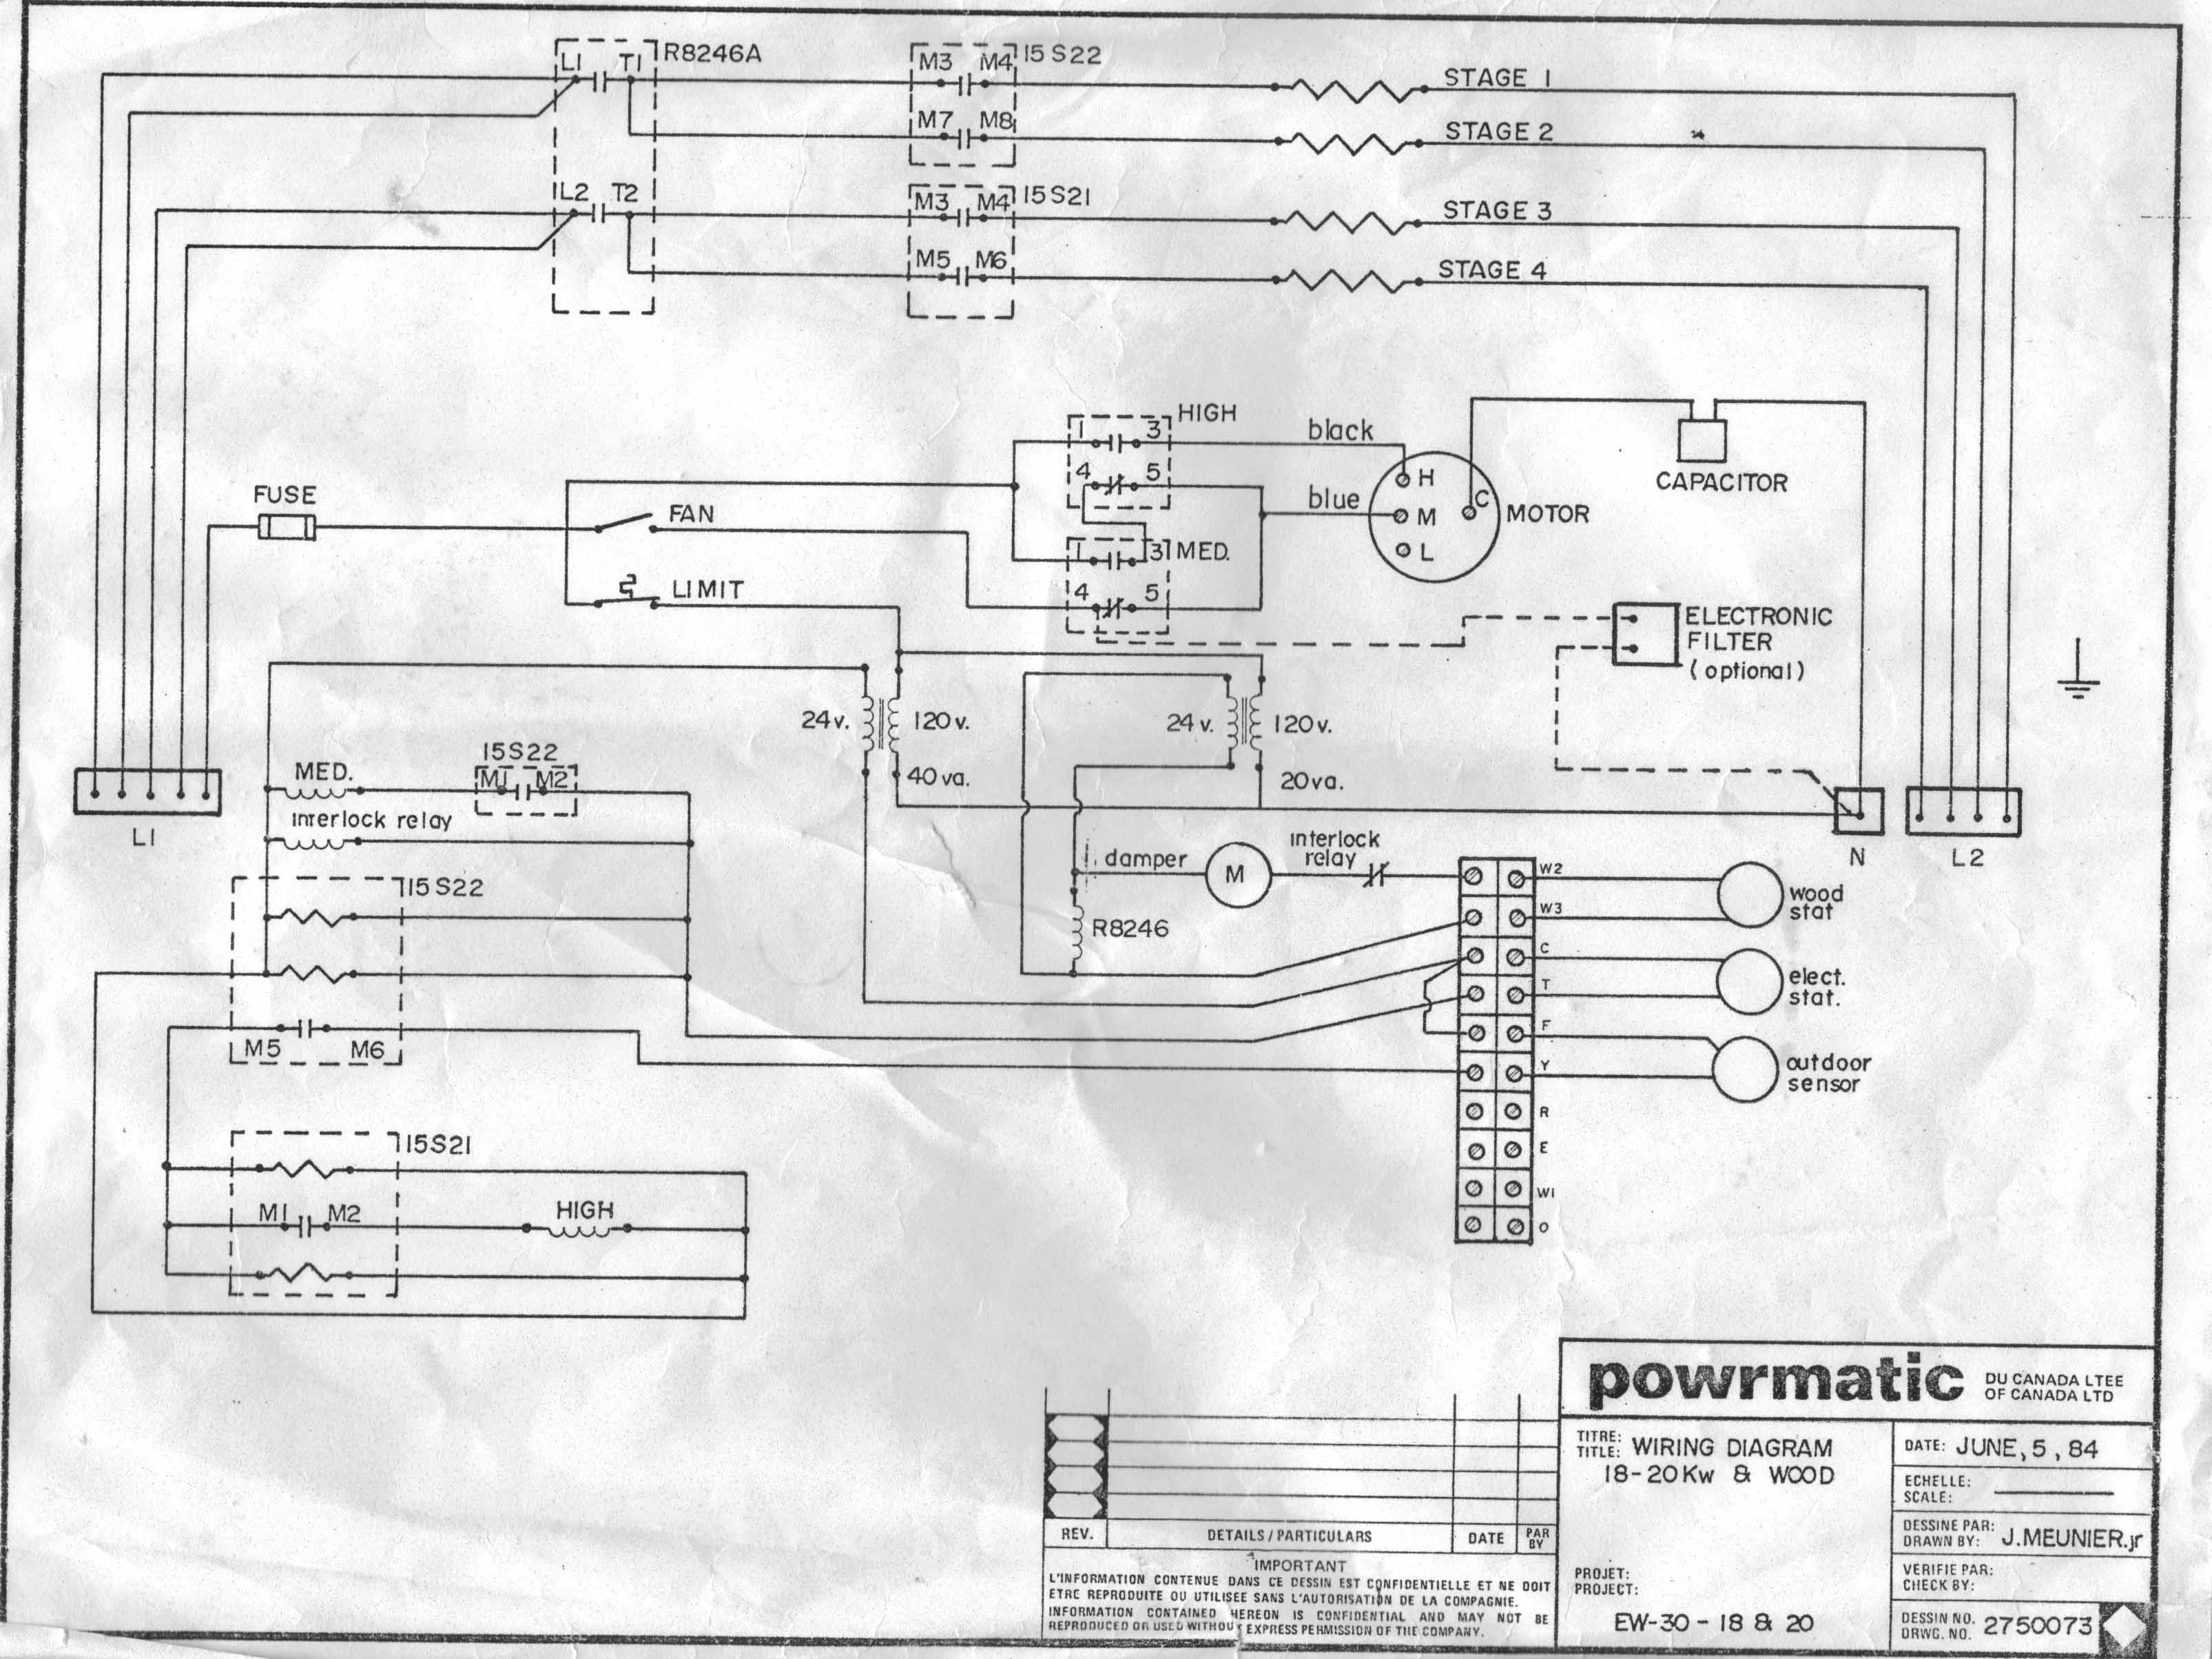 I Have A Powermatic Furnace Combining Electricity It Is 30 Heater 120v Wiring Diagrams Years Old And Give Me Satisfaction All This Time But